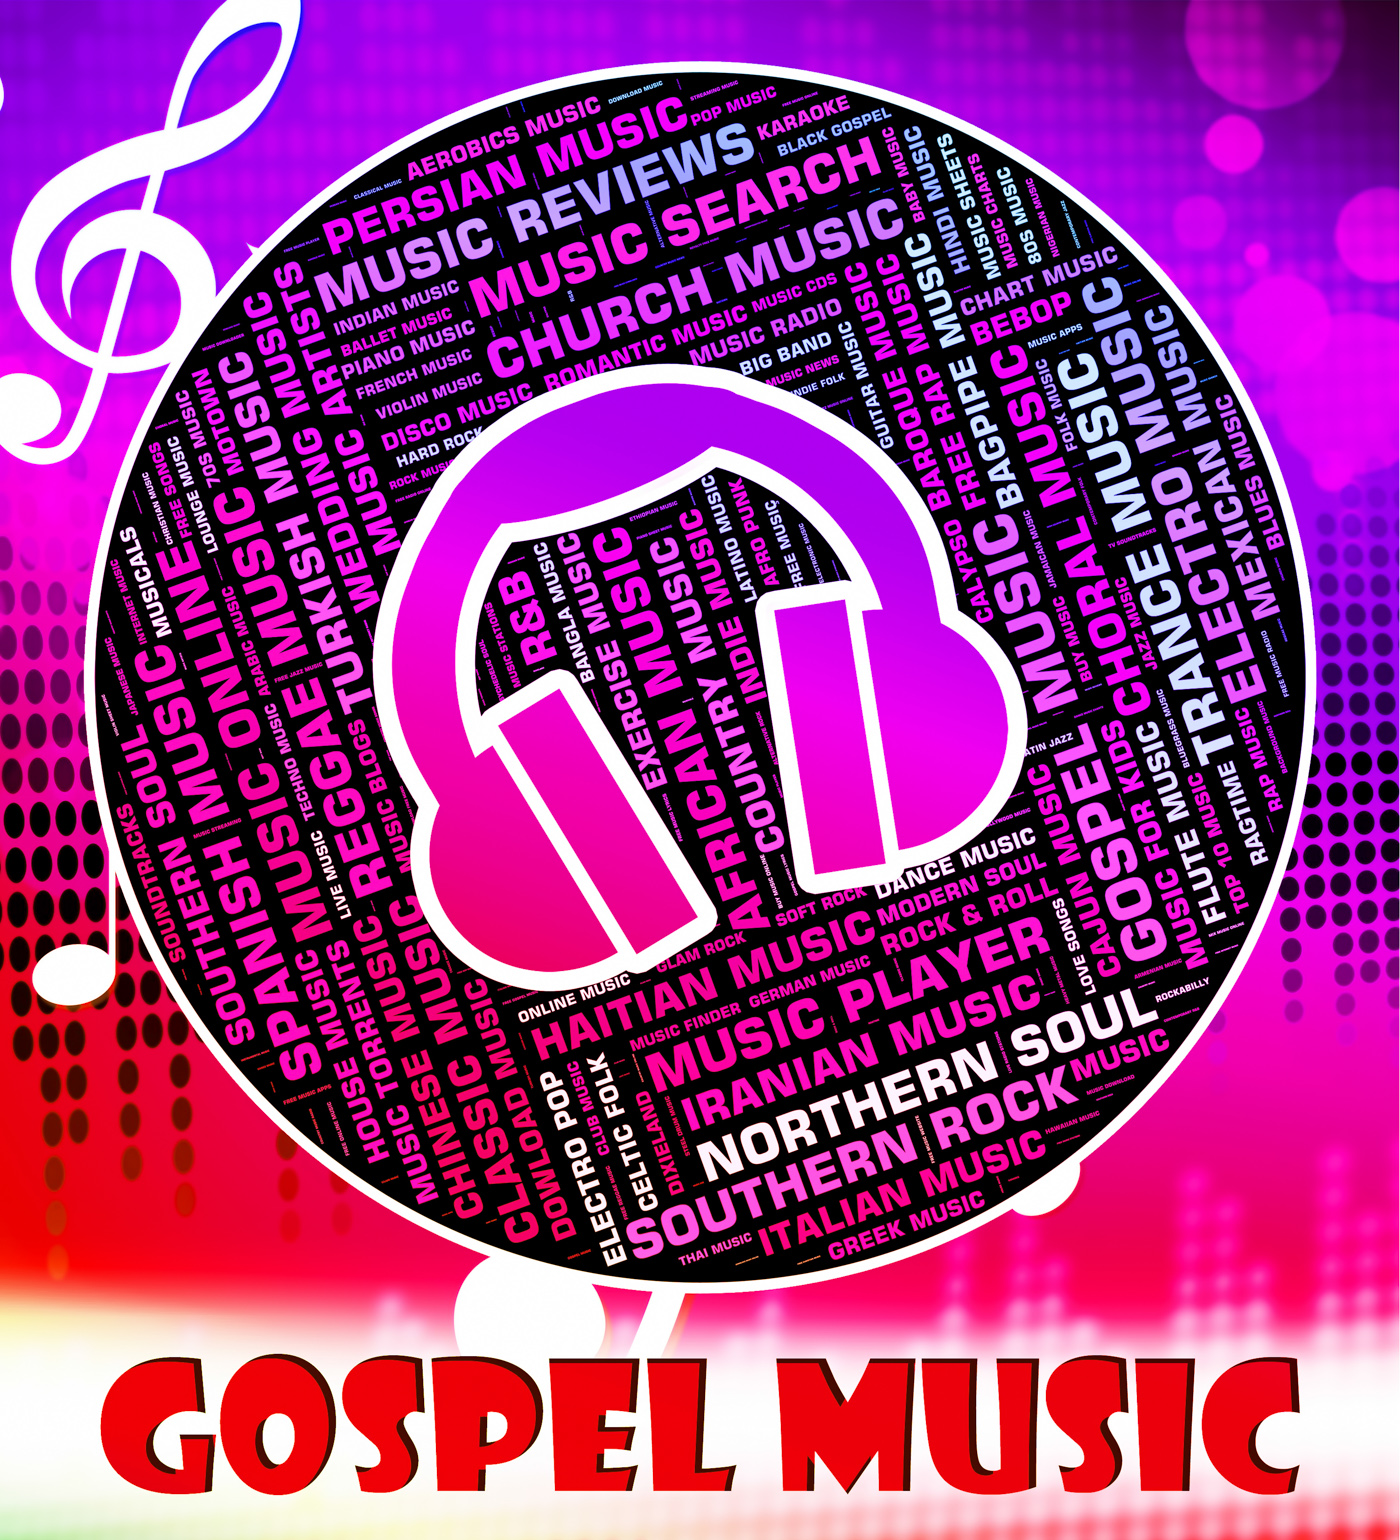 Free photo: Gospel Music Means New Testament And Christian